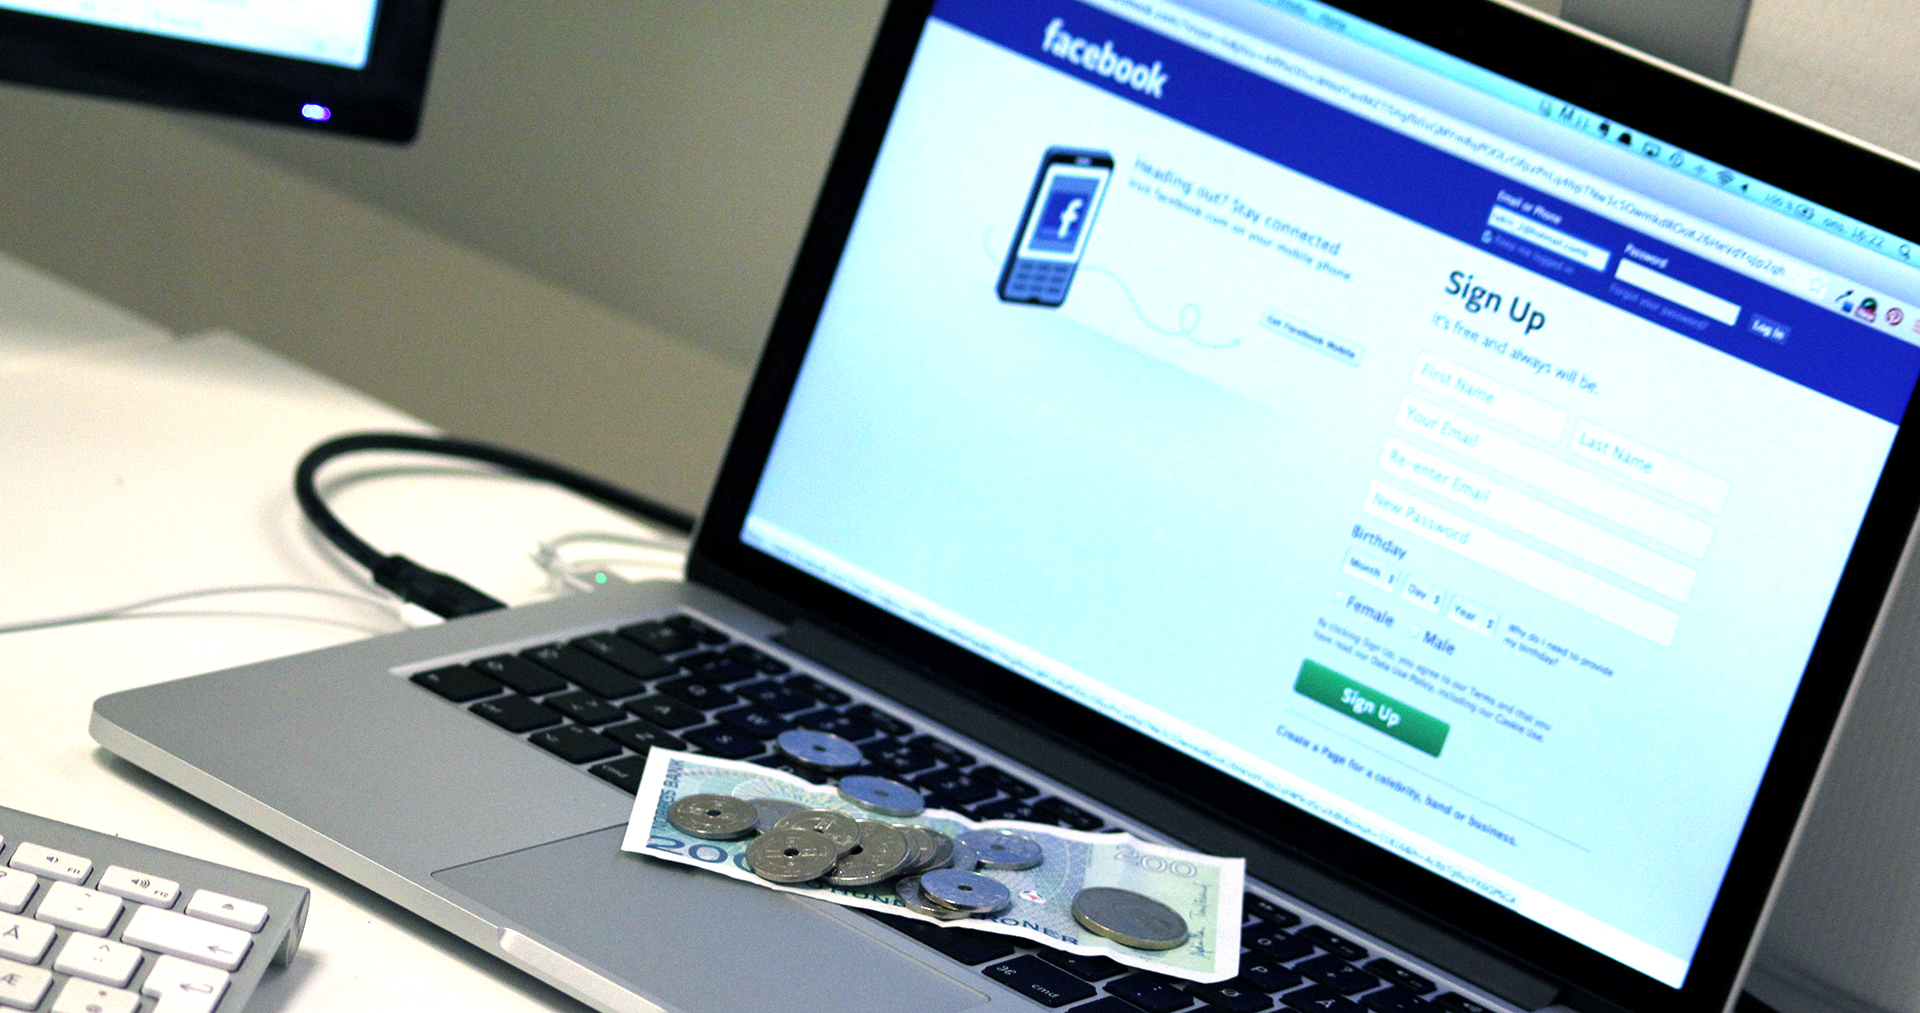 Relax internet, Facebook is not a fraud